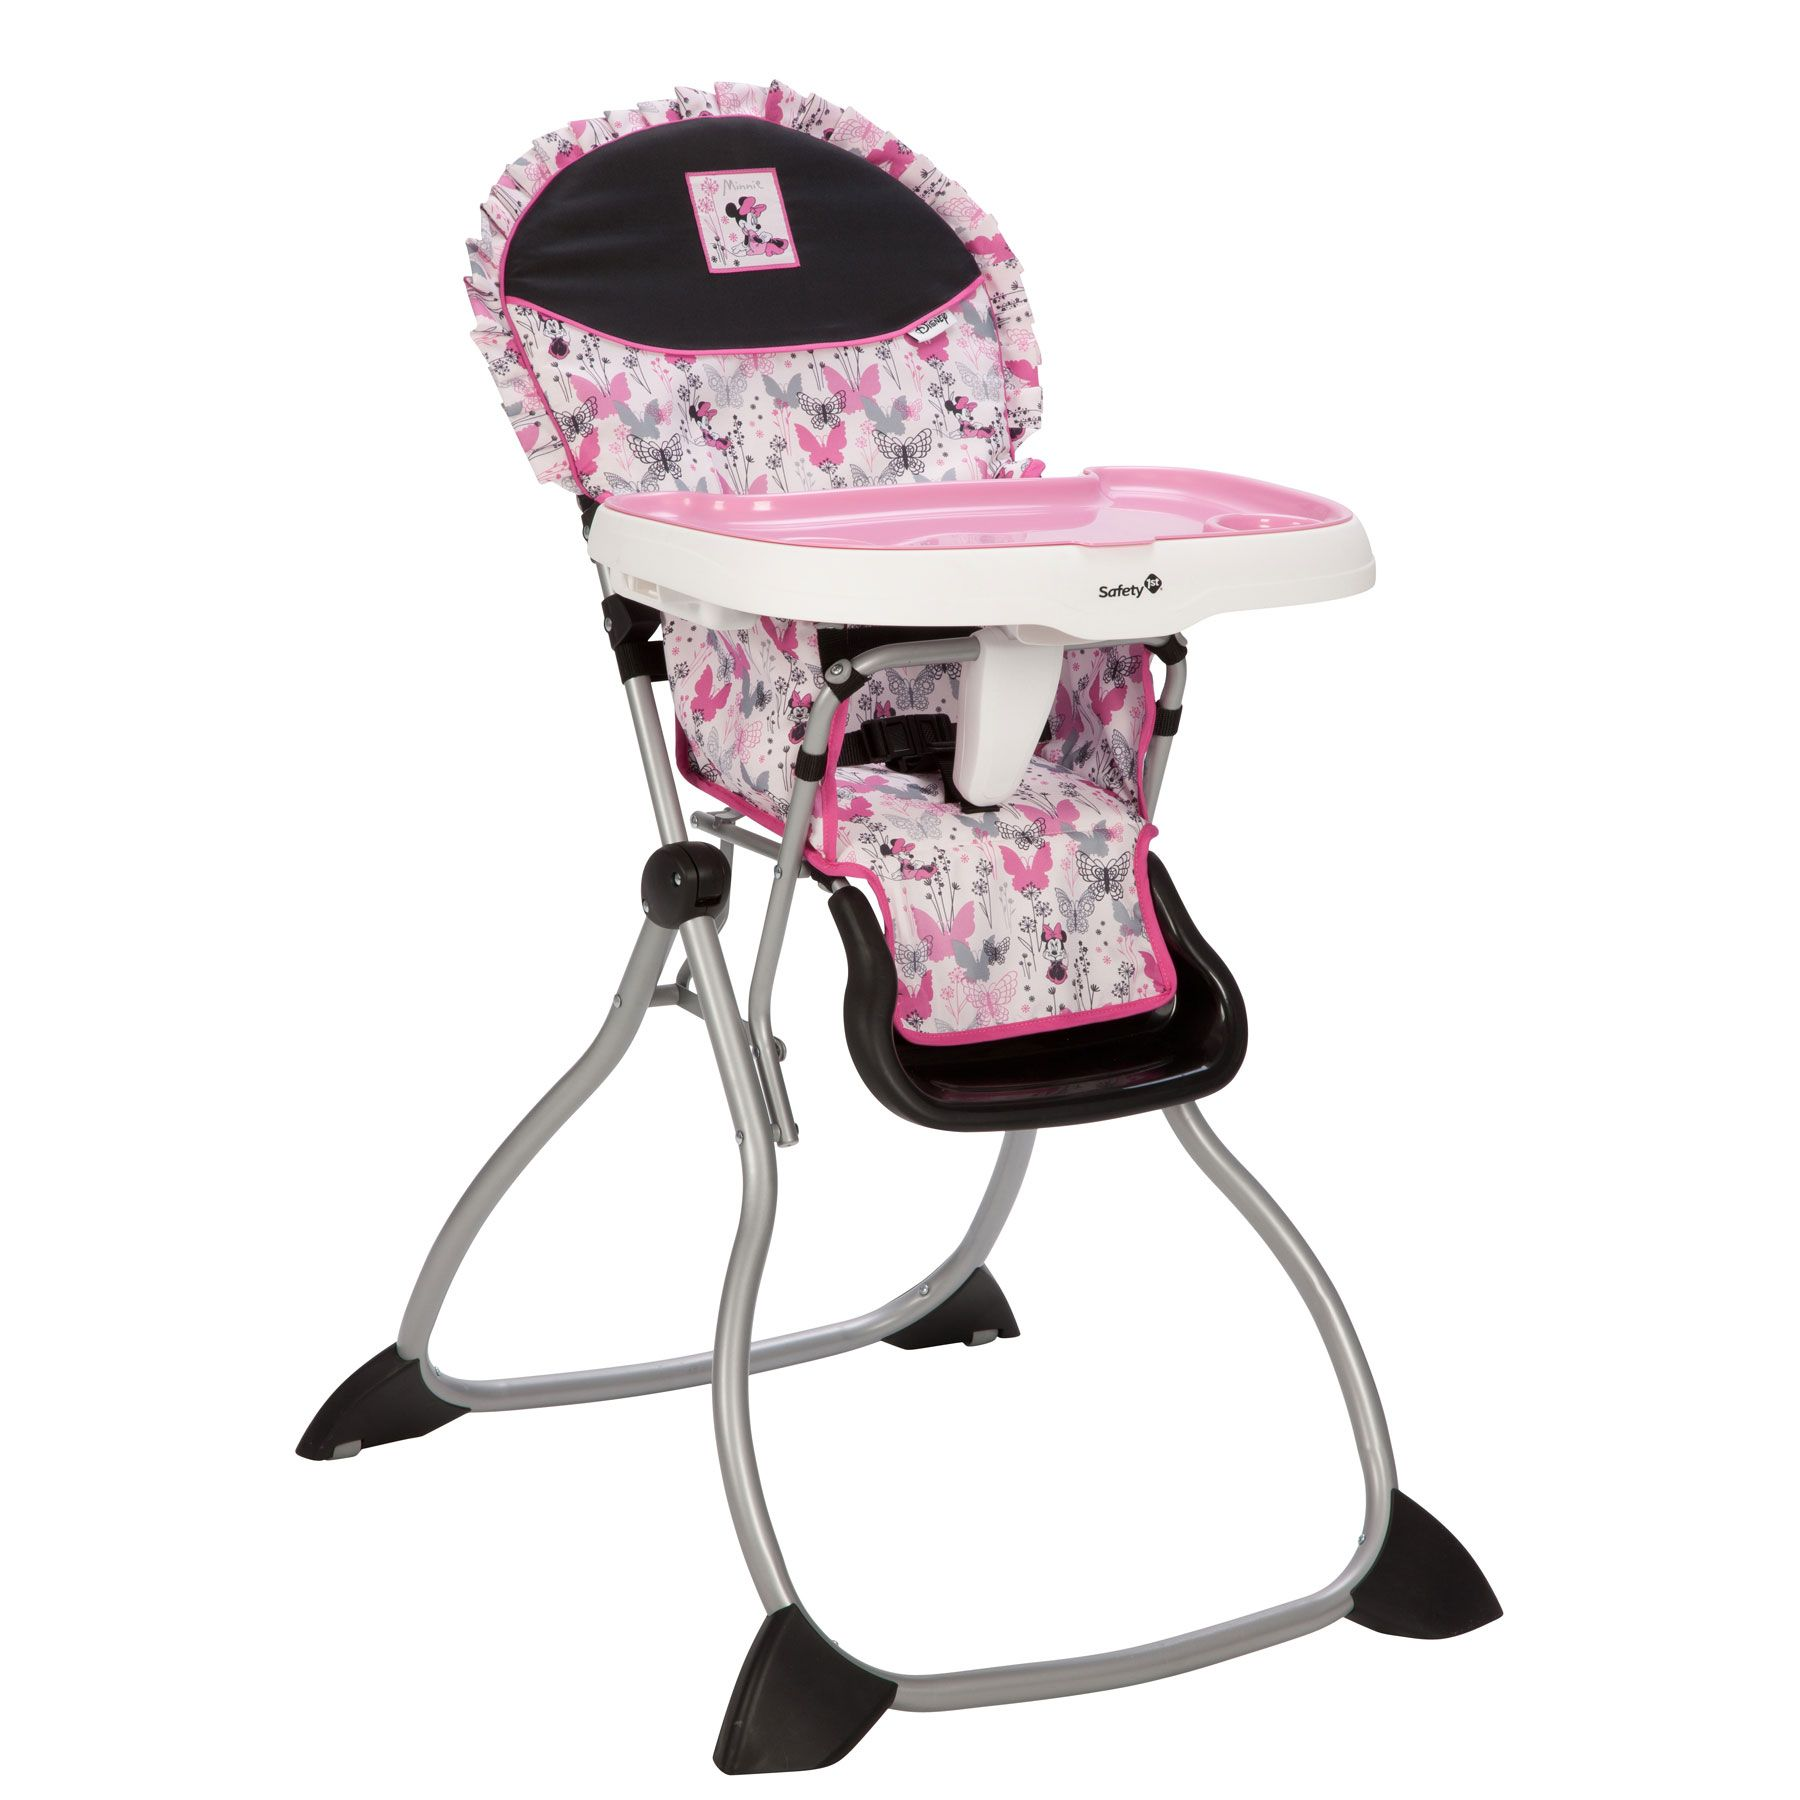 This pink, grey and black Minnie Mouse high chair is as